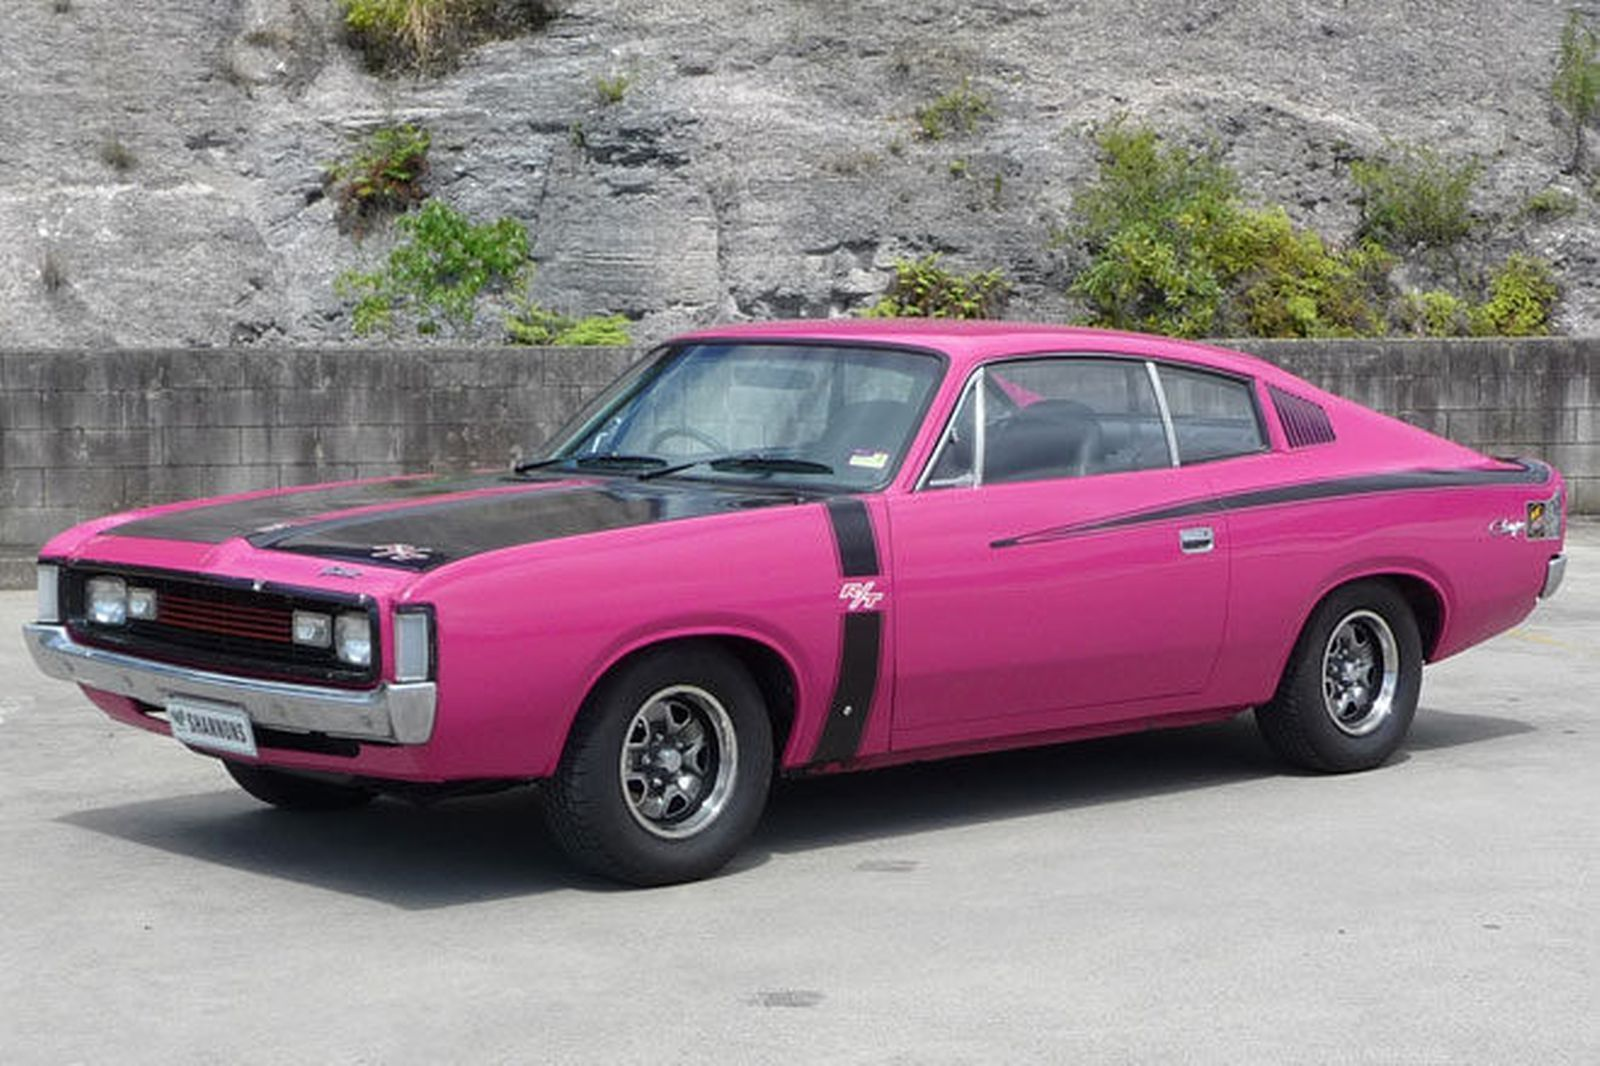 1971 Chrysler Vh Valiant Charger R T E37 Coupe With Images